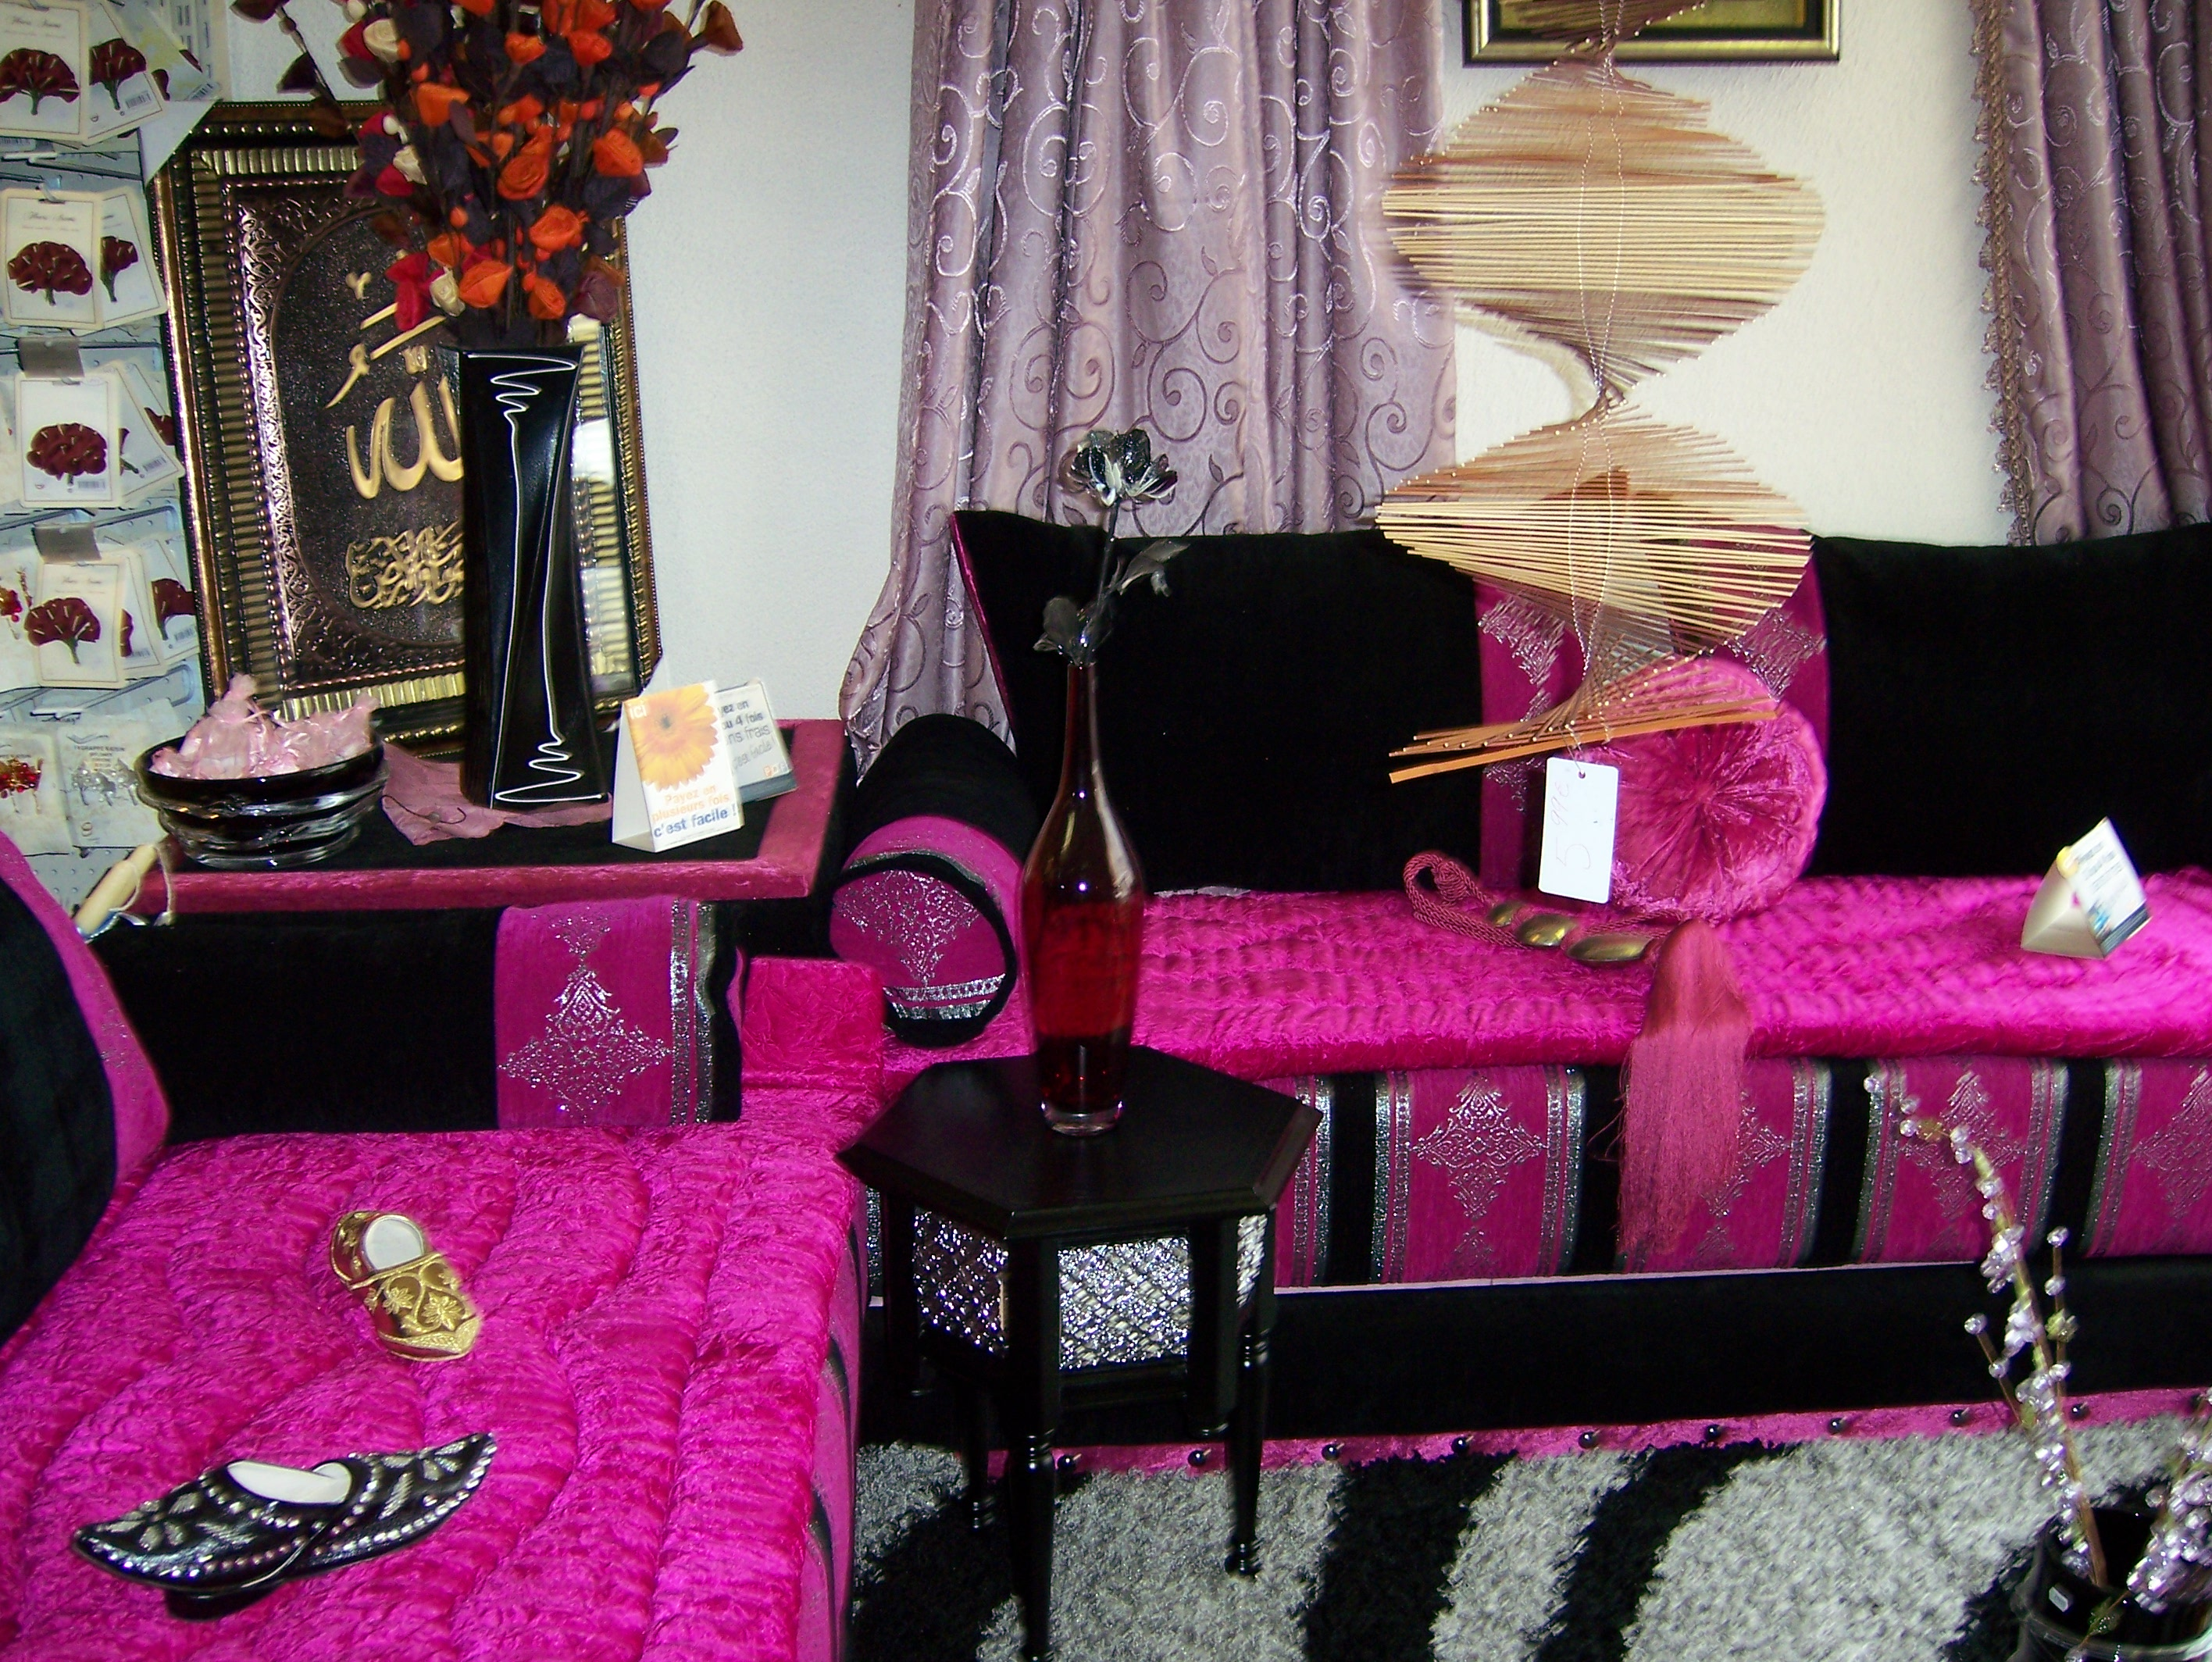 Salon marocain lille france for Photos de salons marocains